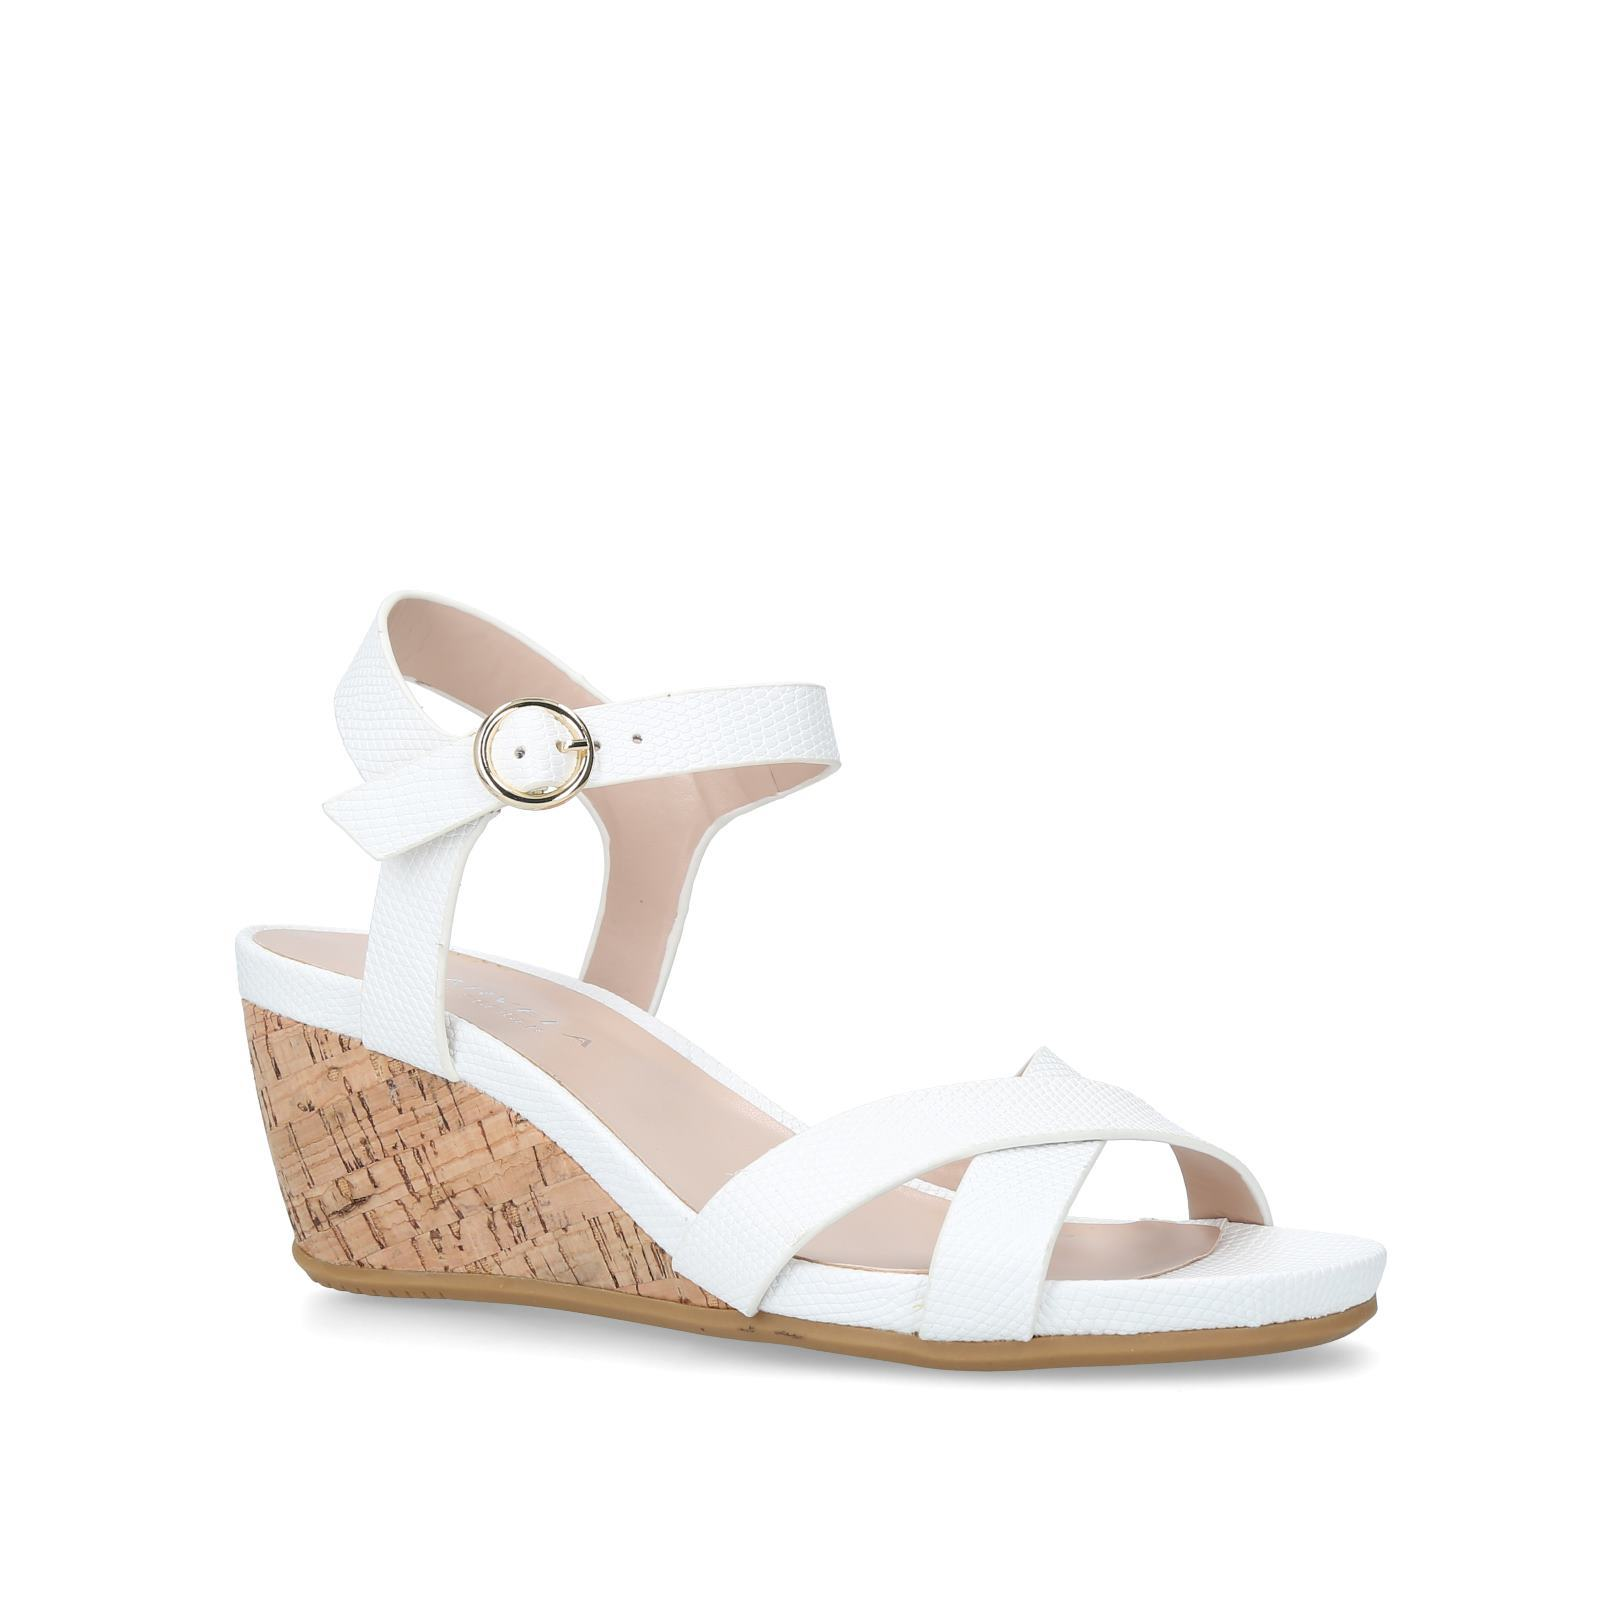 4a3f5b371b0 SPARKIE Carvela Sparkie White Low Wedge Sandal by CARVELA